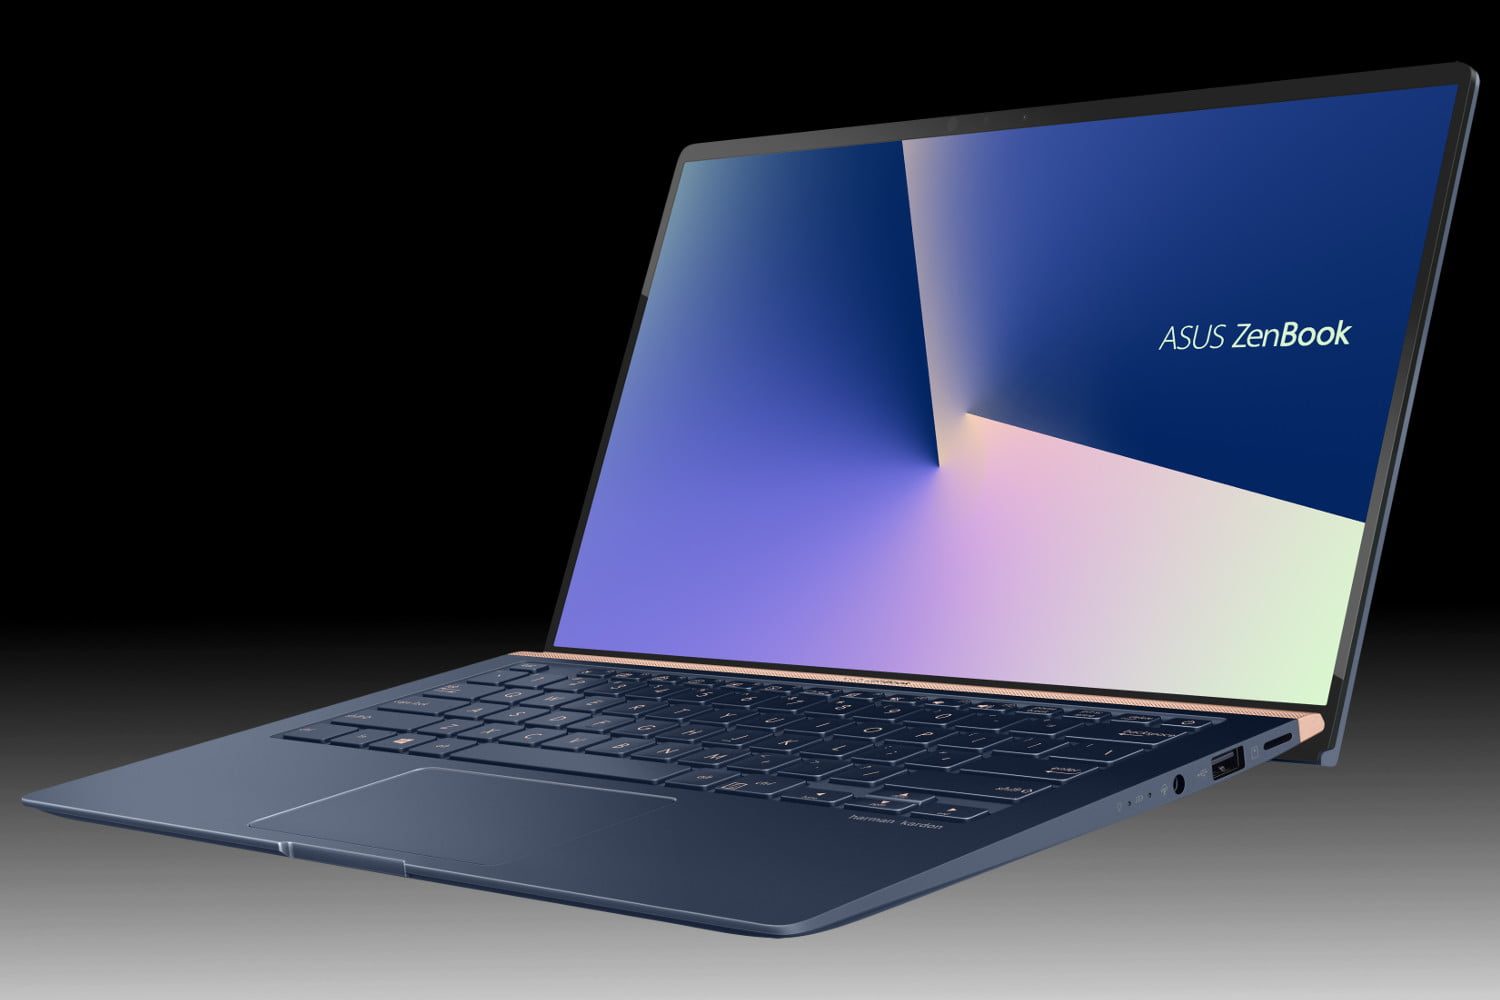 Asus Taps into Intel s  Whiskey Lake  CPUs for its new ZenBook Lineup    Digital Trends 747ed991c2ef